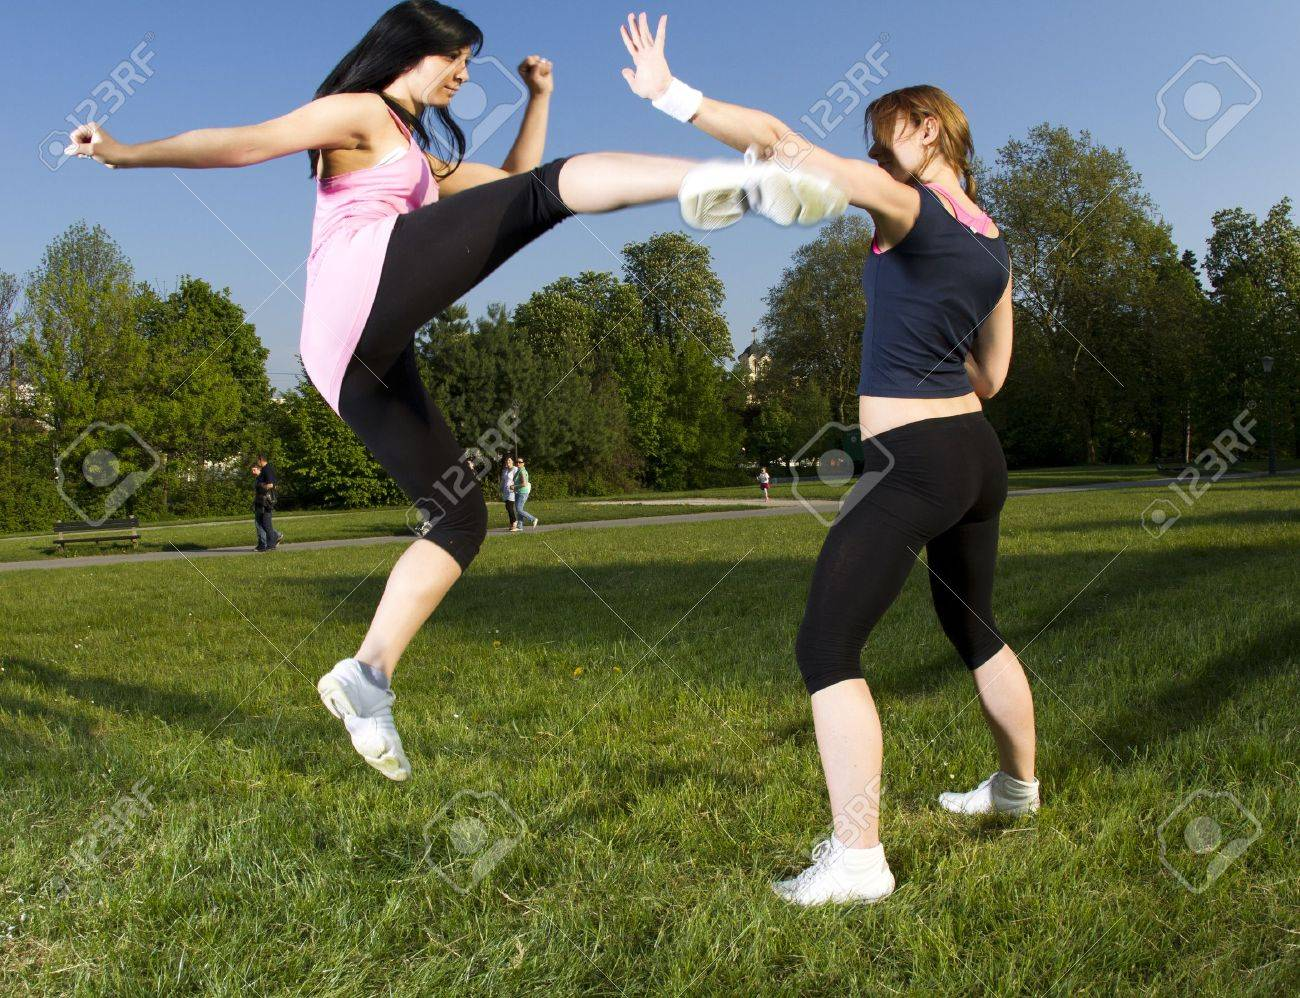 Karate fight between young girls in the park Stock Photo - 9390339